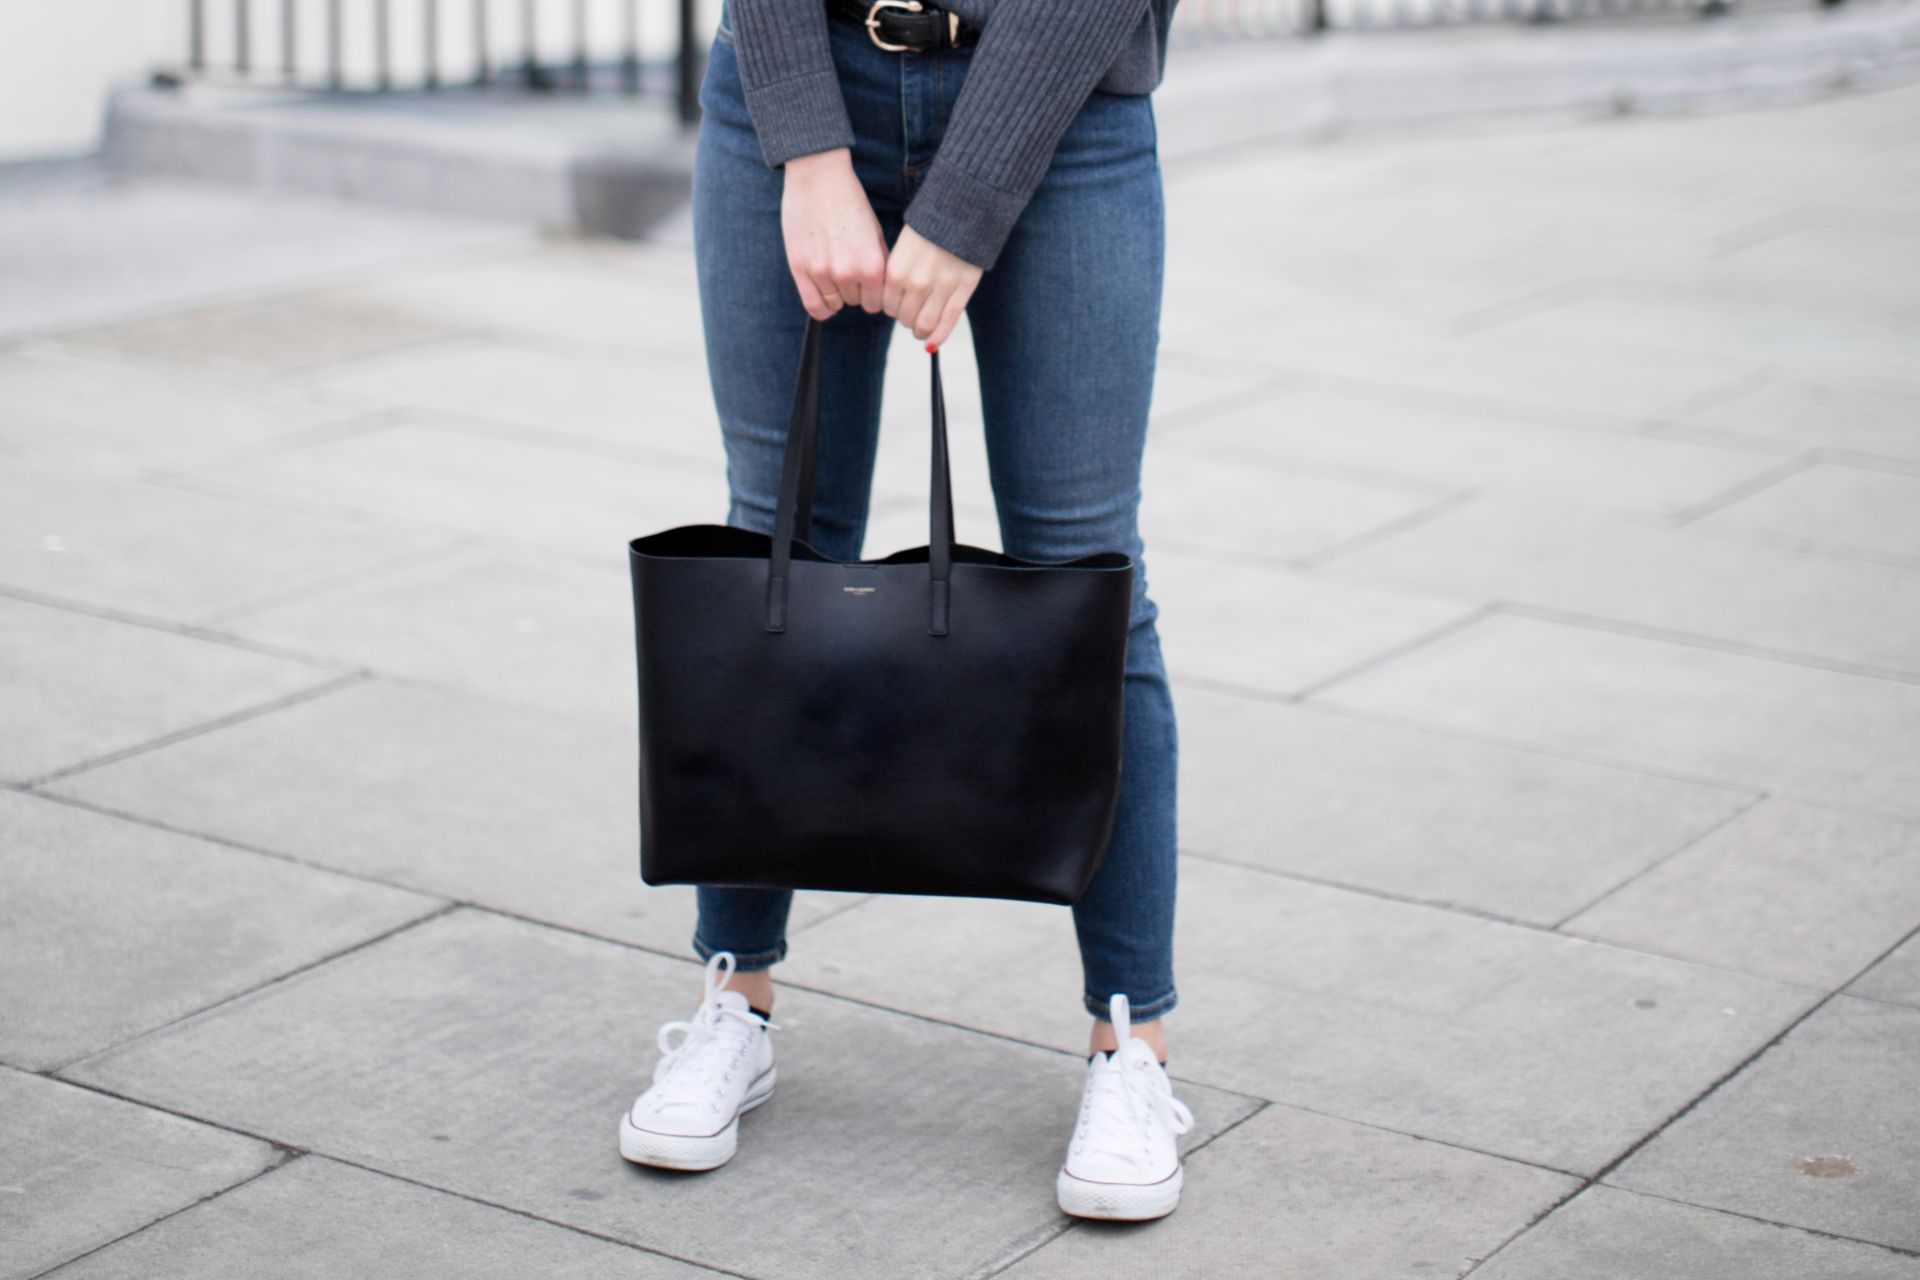 Saint Laurent Tote Bag Review – The Anna Edit